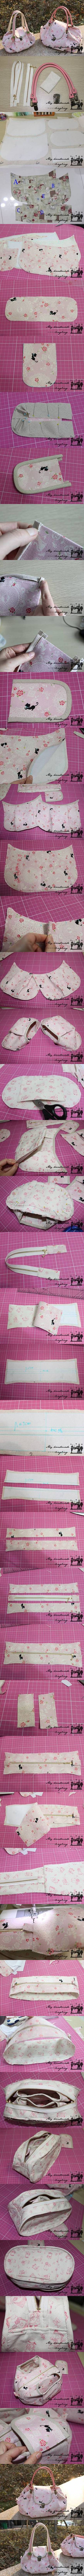 How to Sew Cute Handbag DIY tutorial instructions